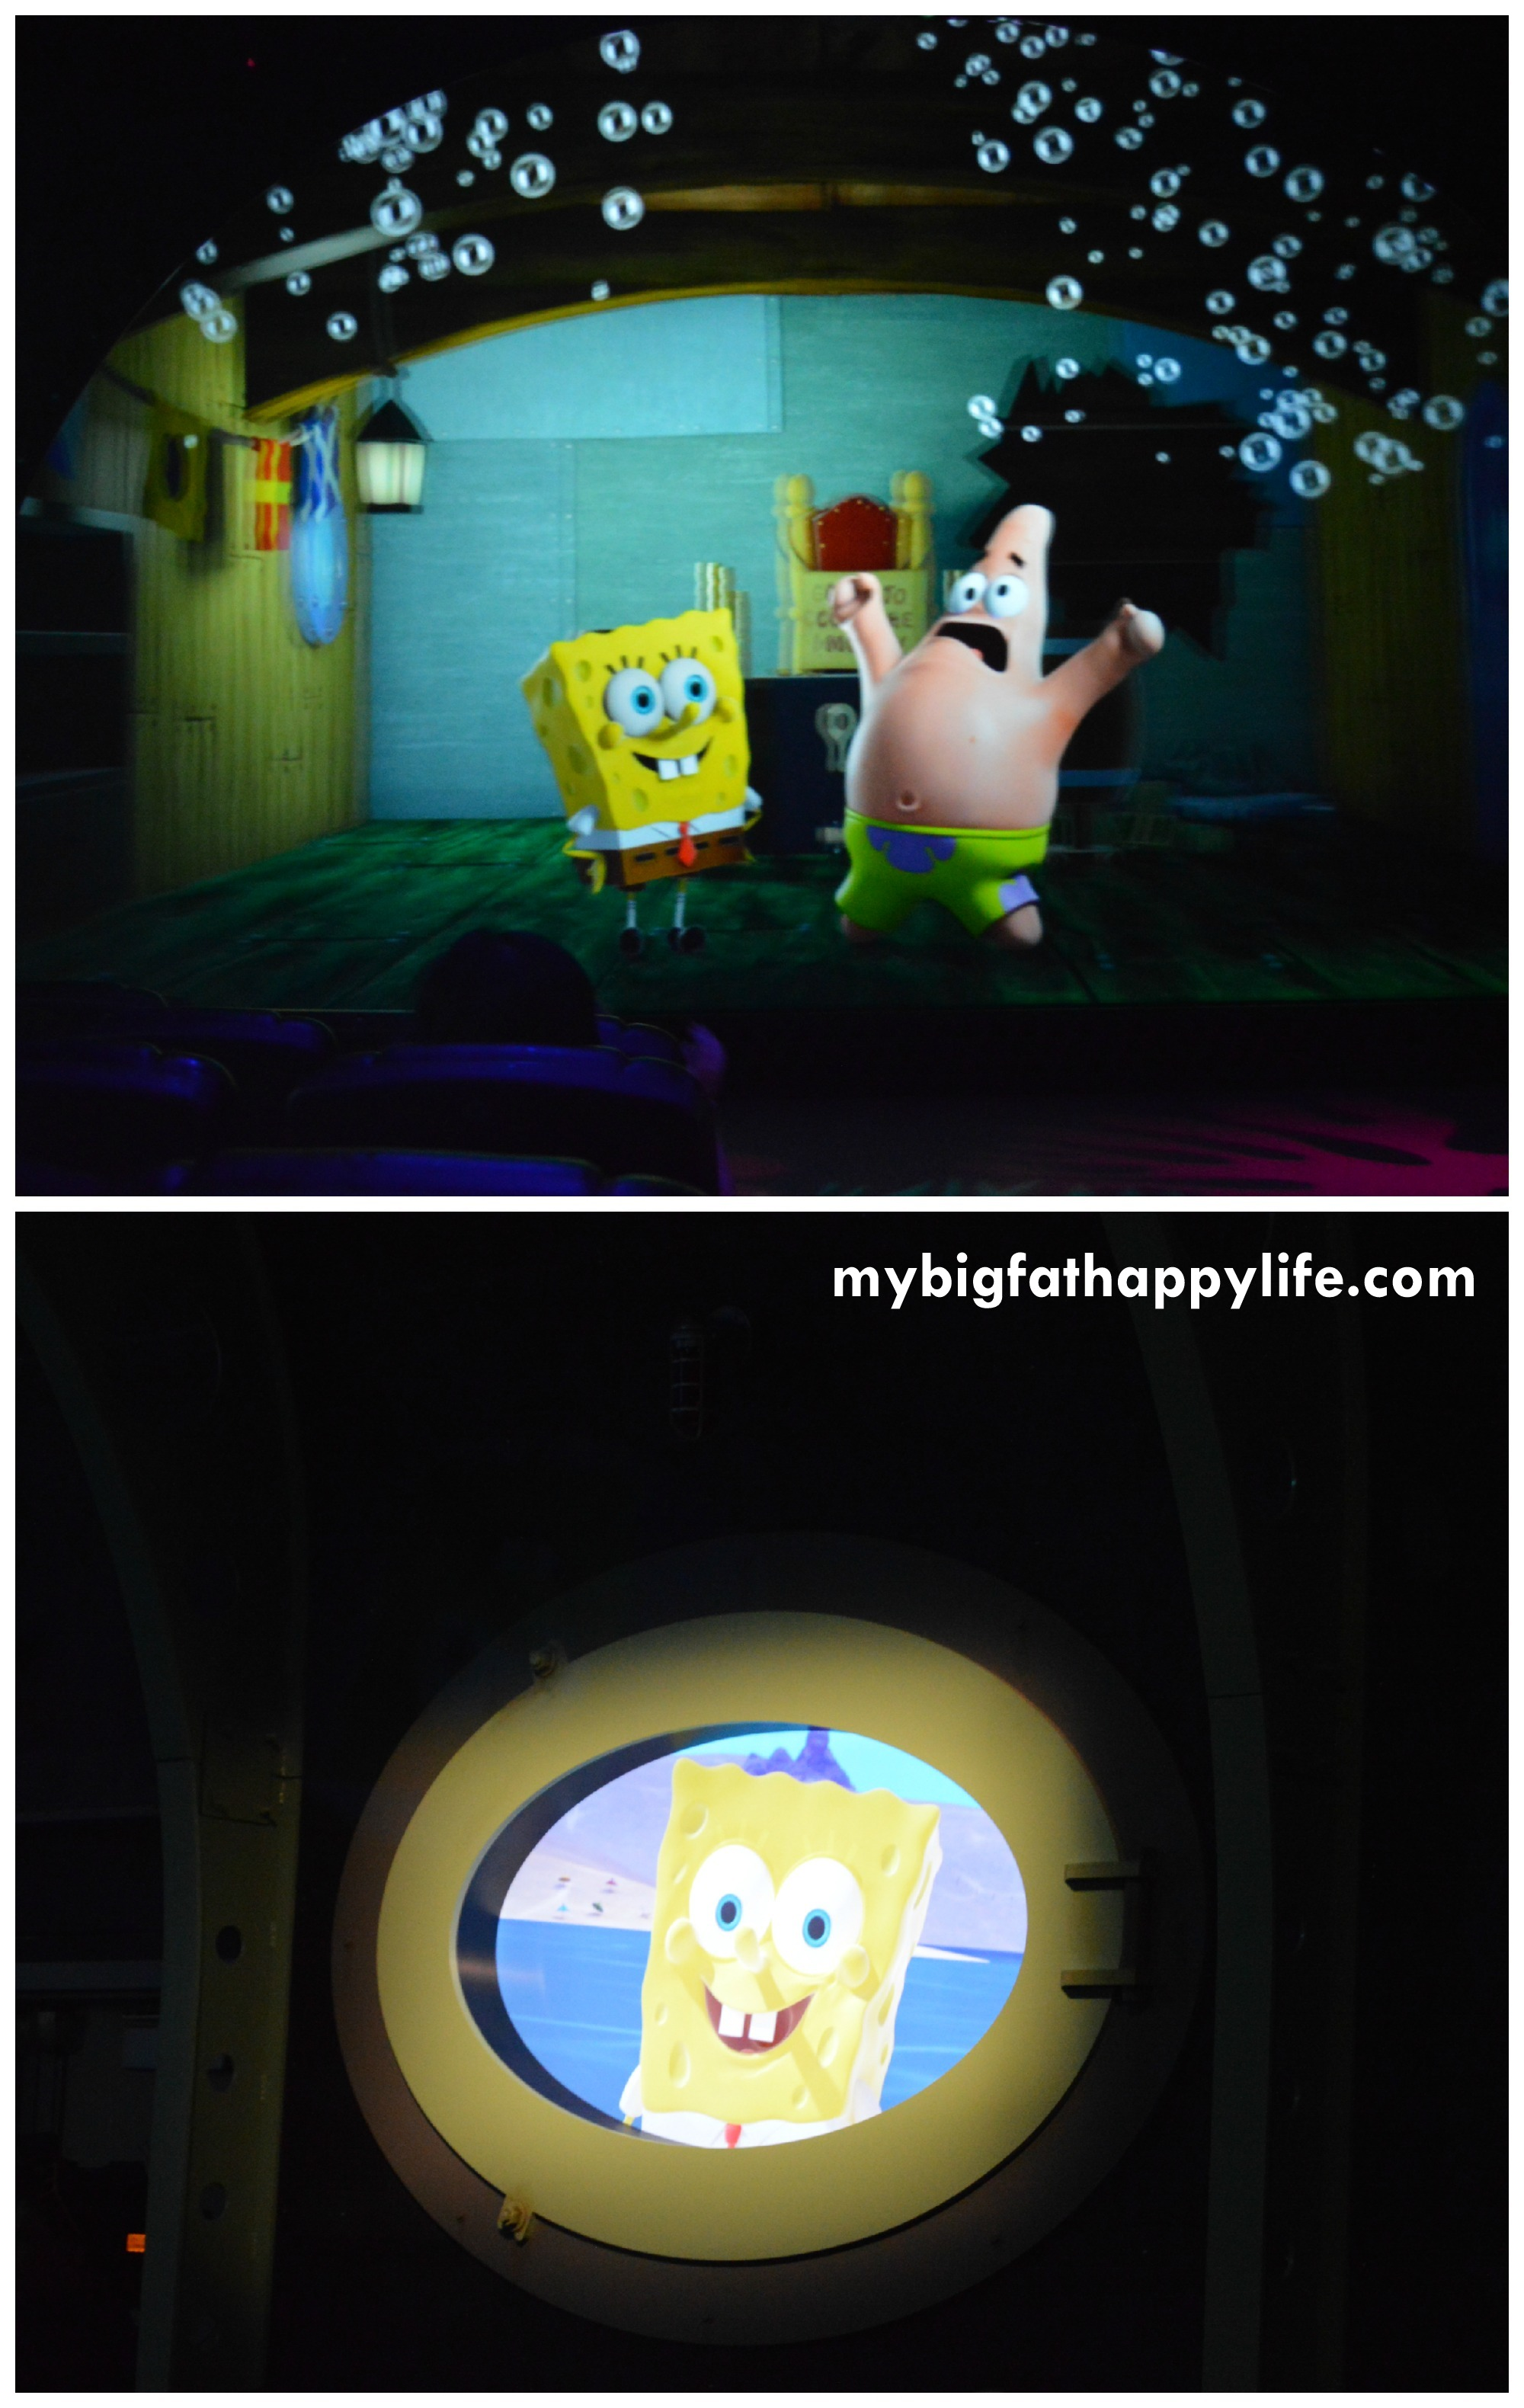 Moody Gardens: SpongeBob SubPants Adventure + Coupon Code #SubPants  #ChooseYourAdventure #BestDiveEver #